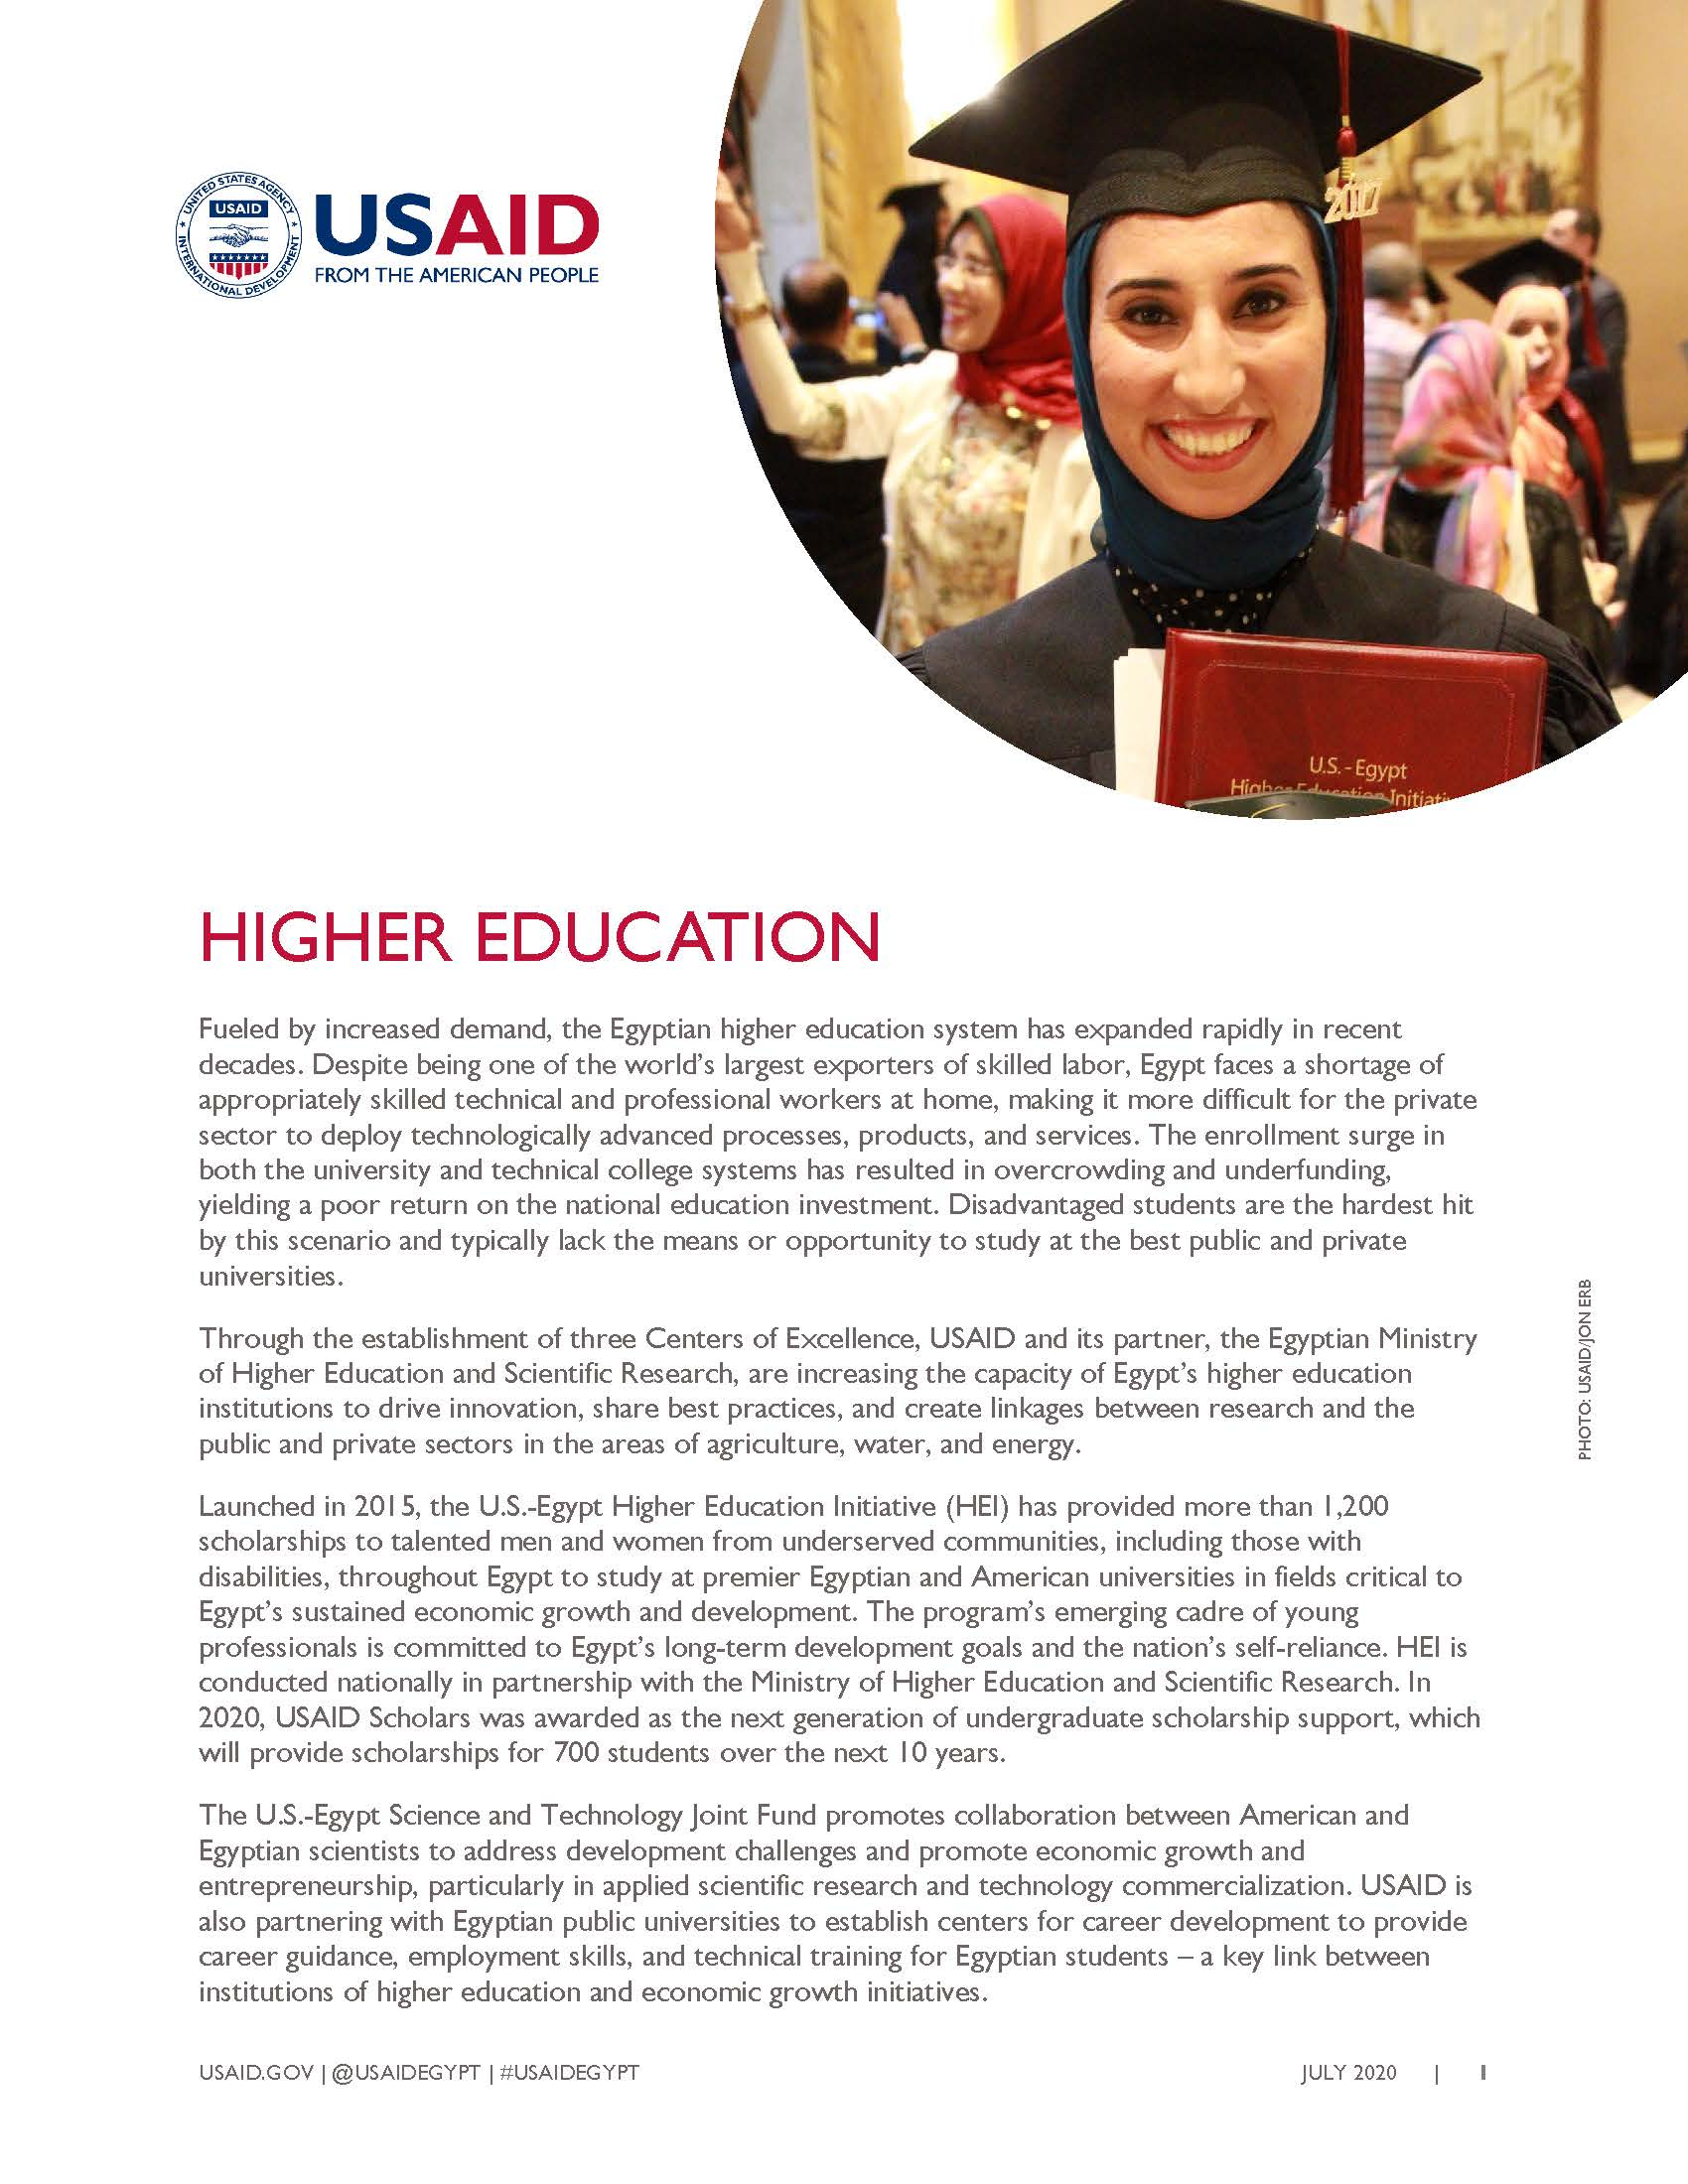 USAID/Egypt Fact Sheet: Higher Education